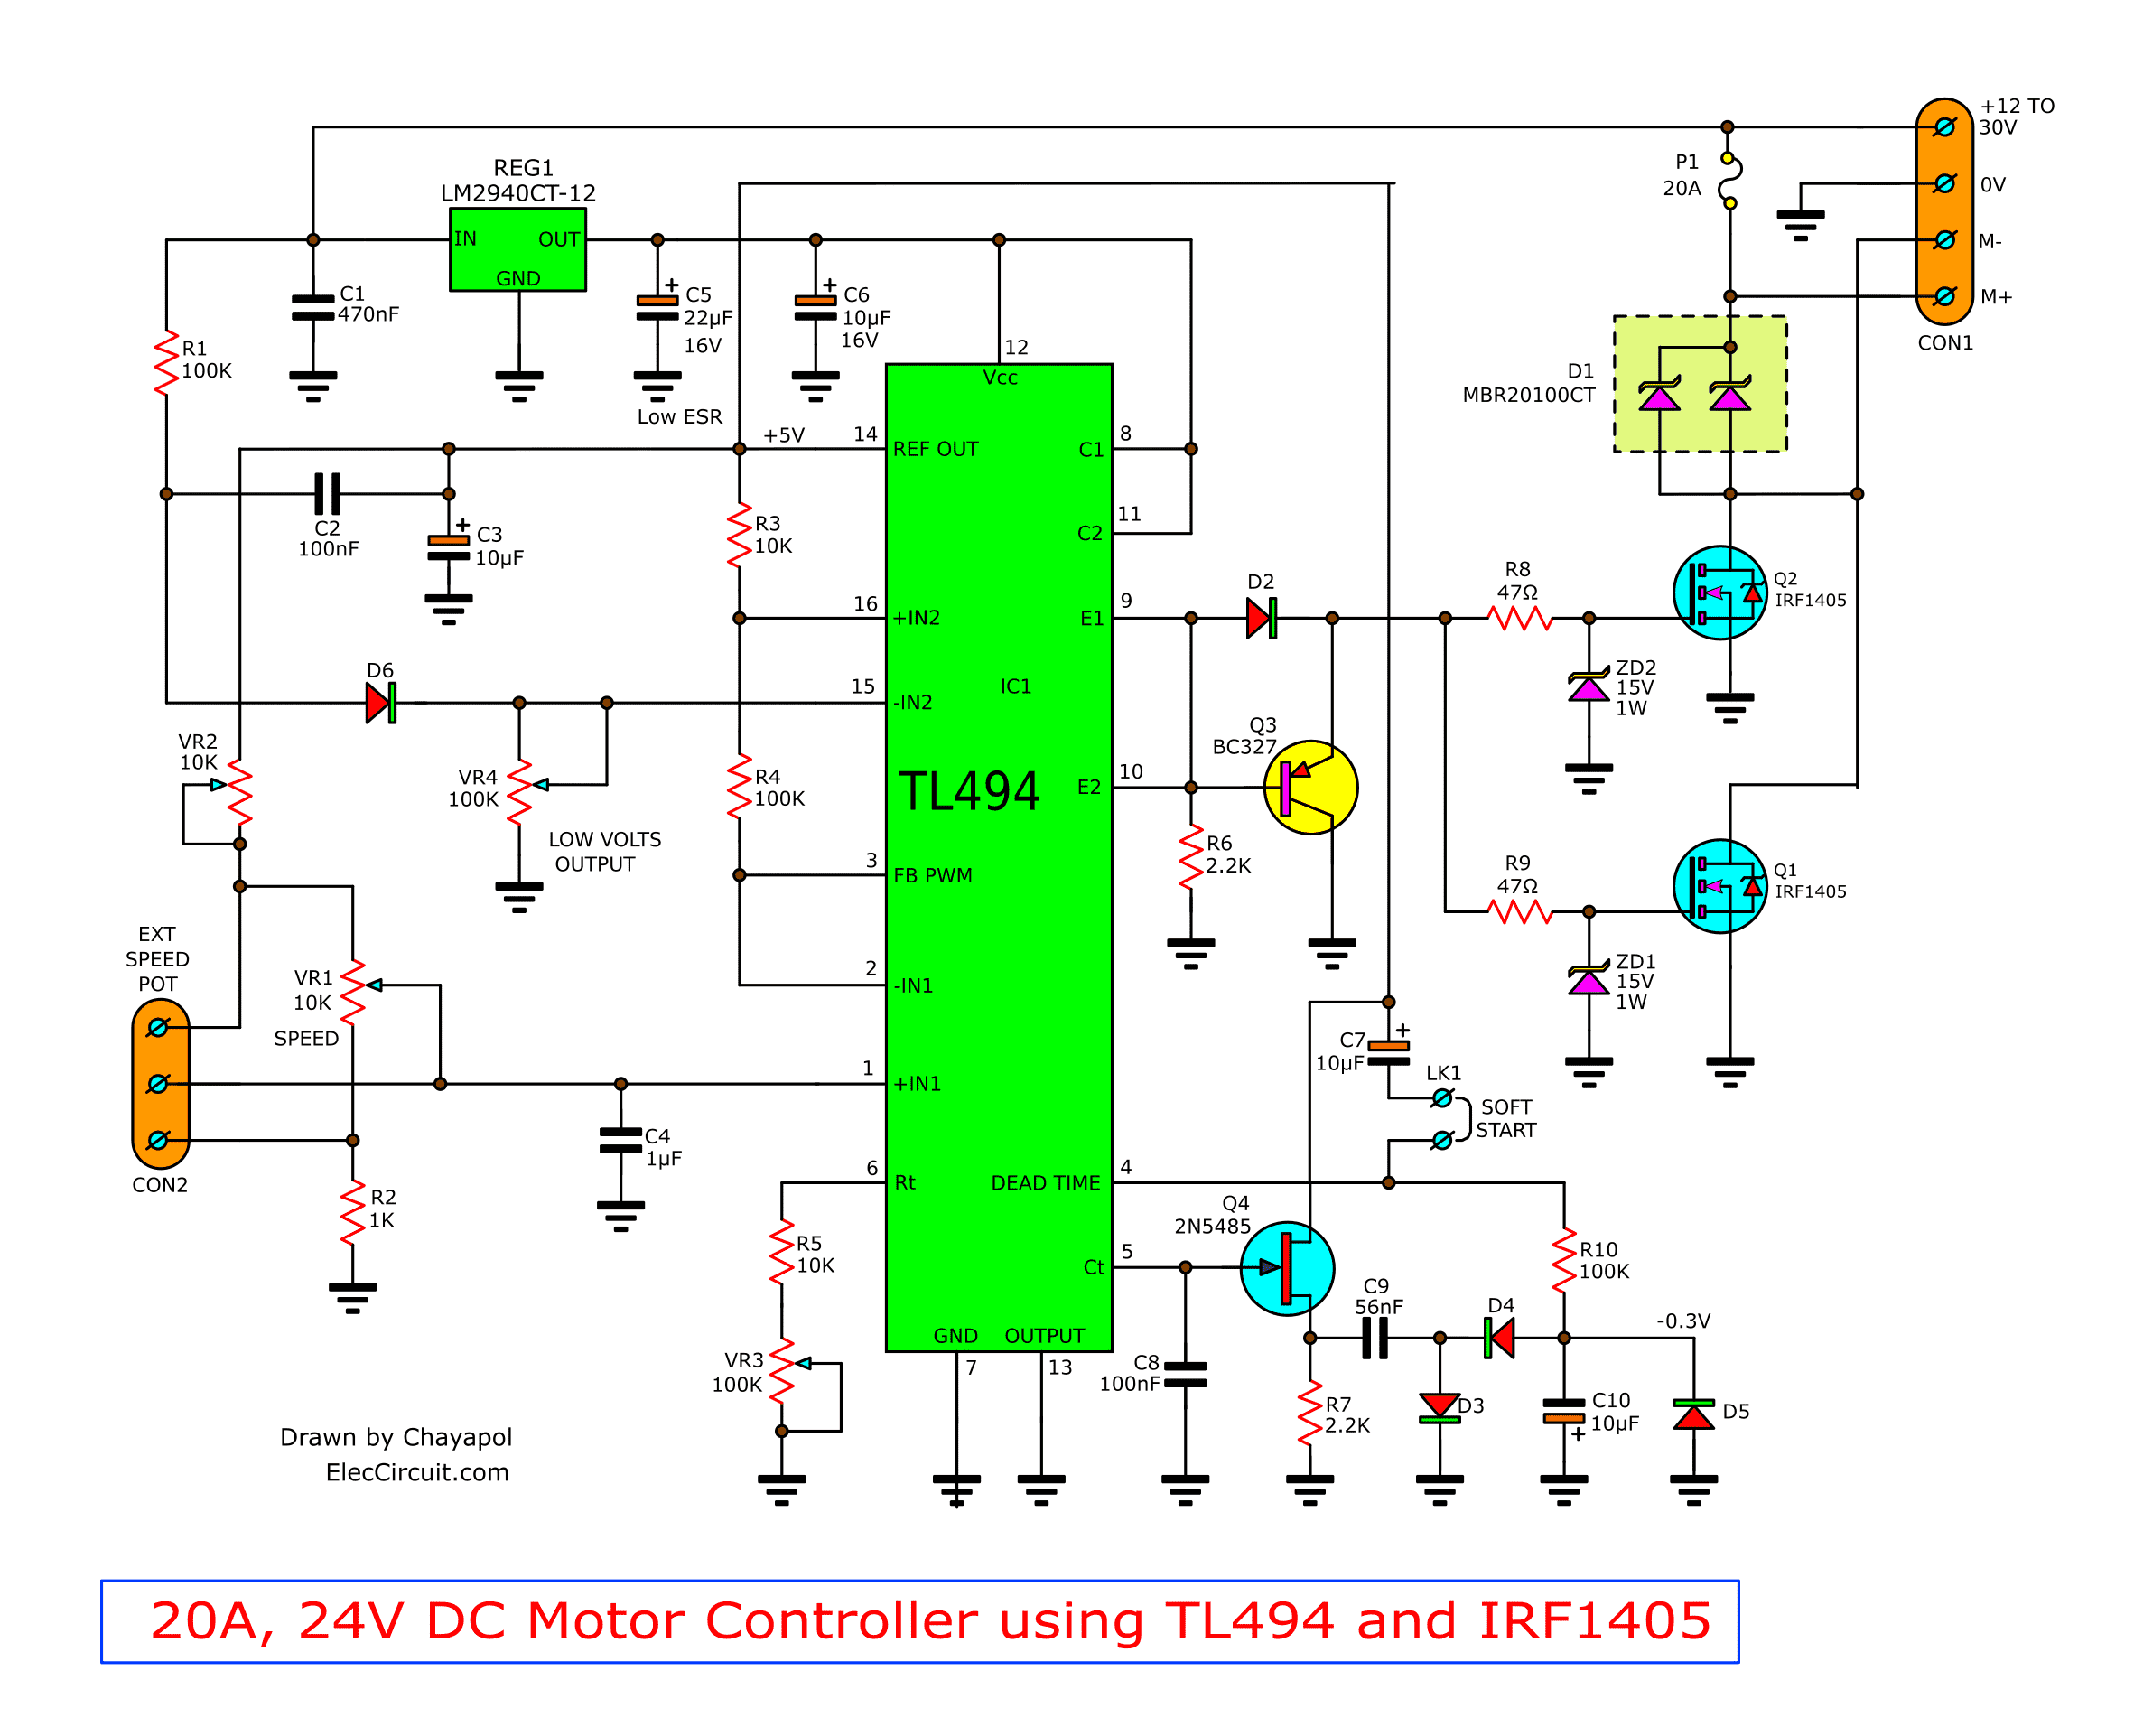 Pwm Schematic Wiring Library Ac Led Circuit Diagram In Addition 12 Volt Voltage Regulator 12v 24v Motor Controller Using Tl494 And Irf1405